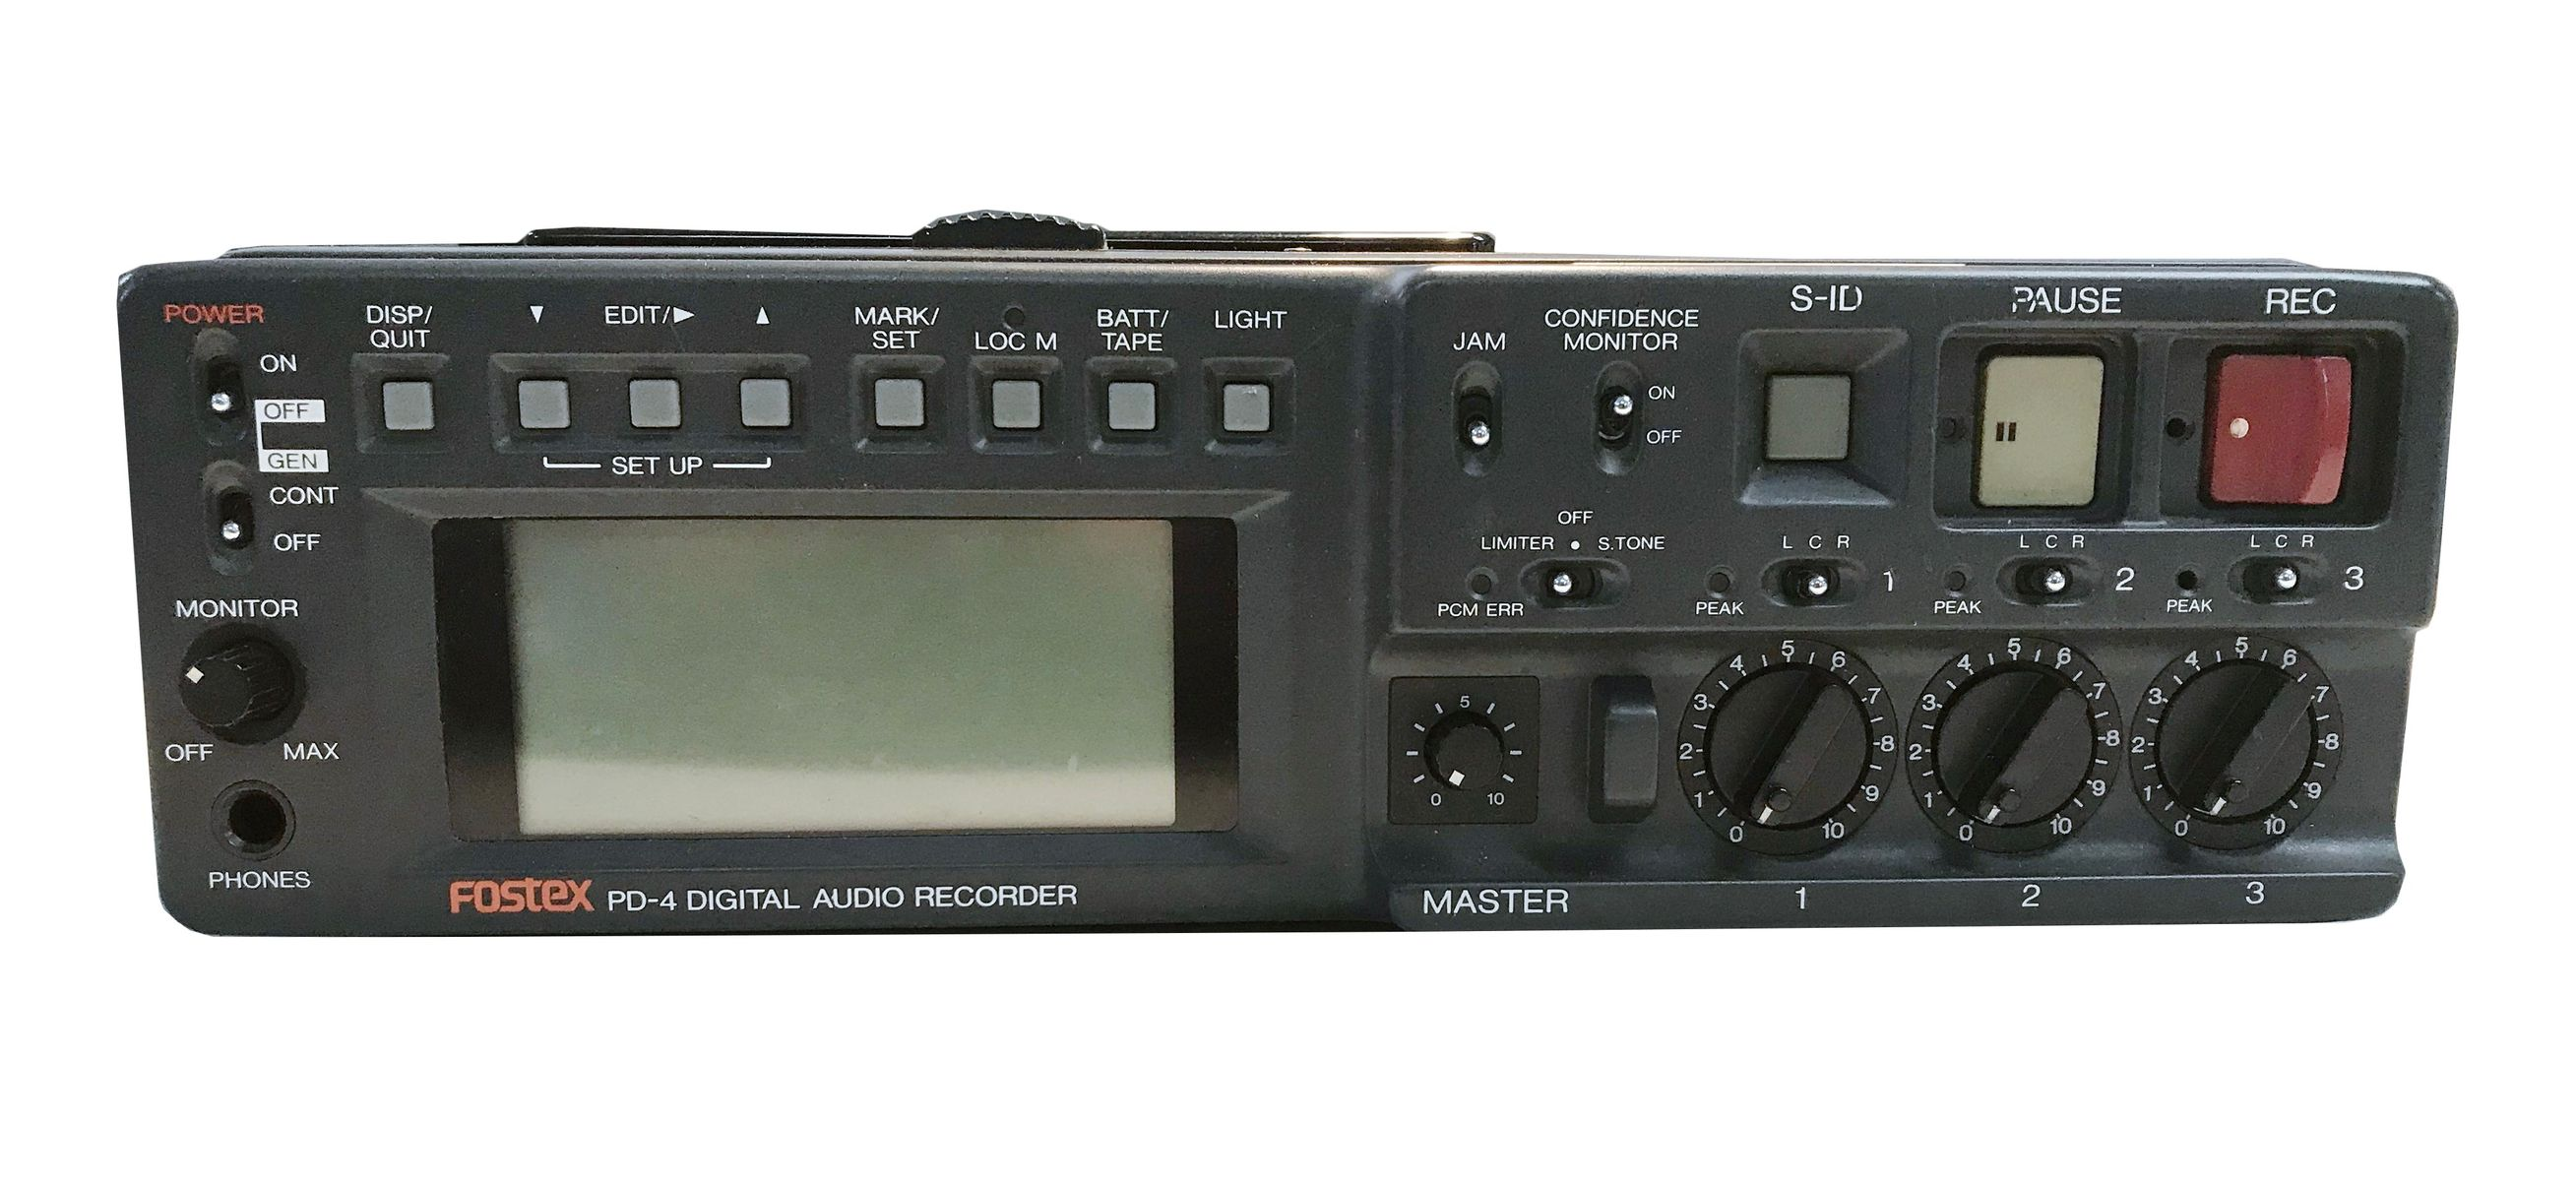 FOSTEX PD-4 Digital Audio Recorder is at Hollywood Sound Systems.